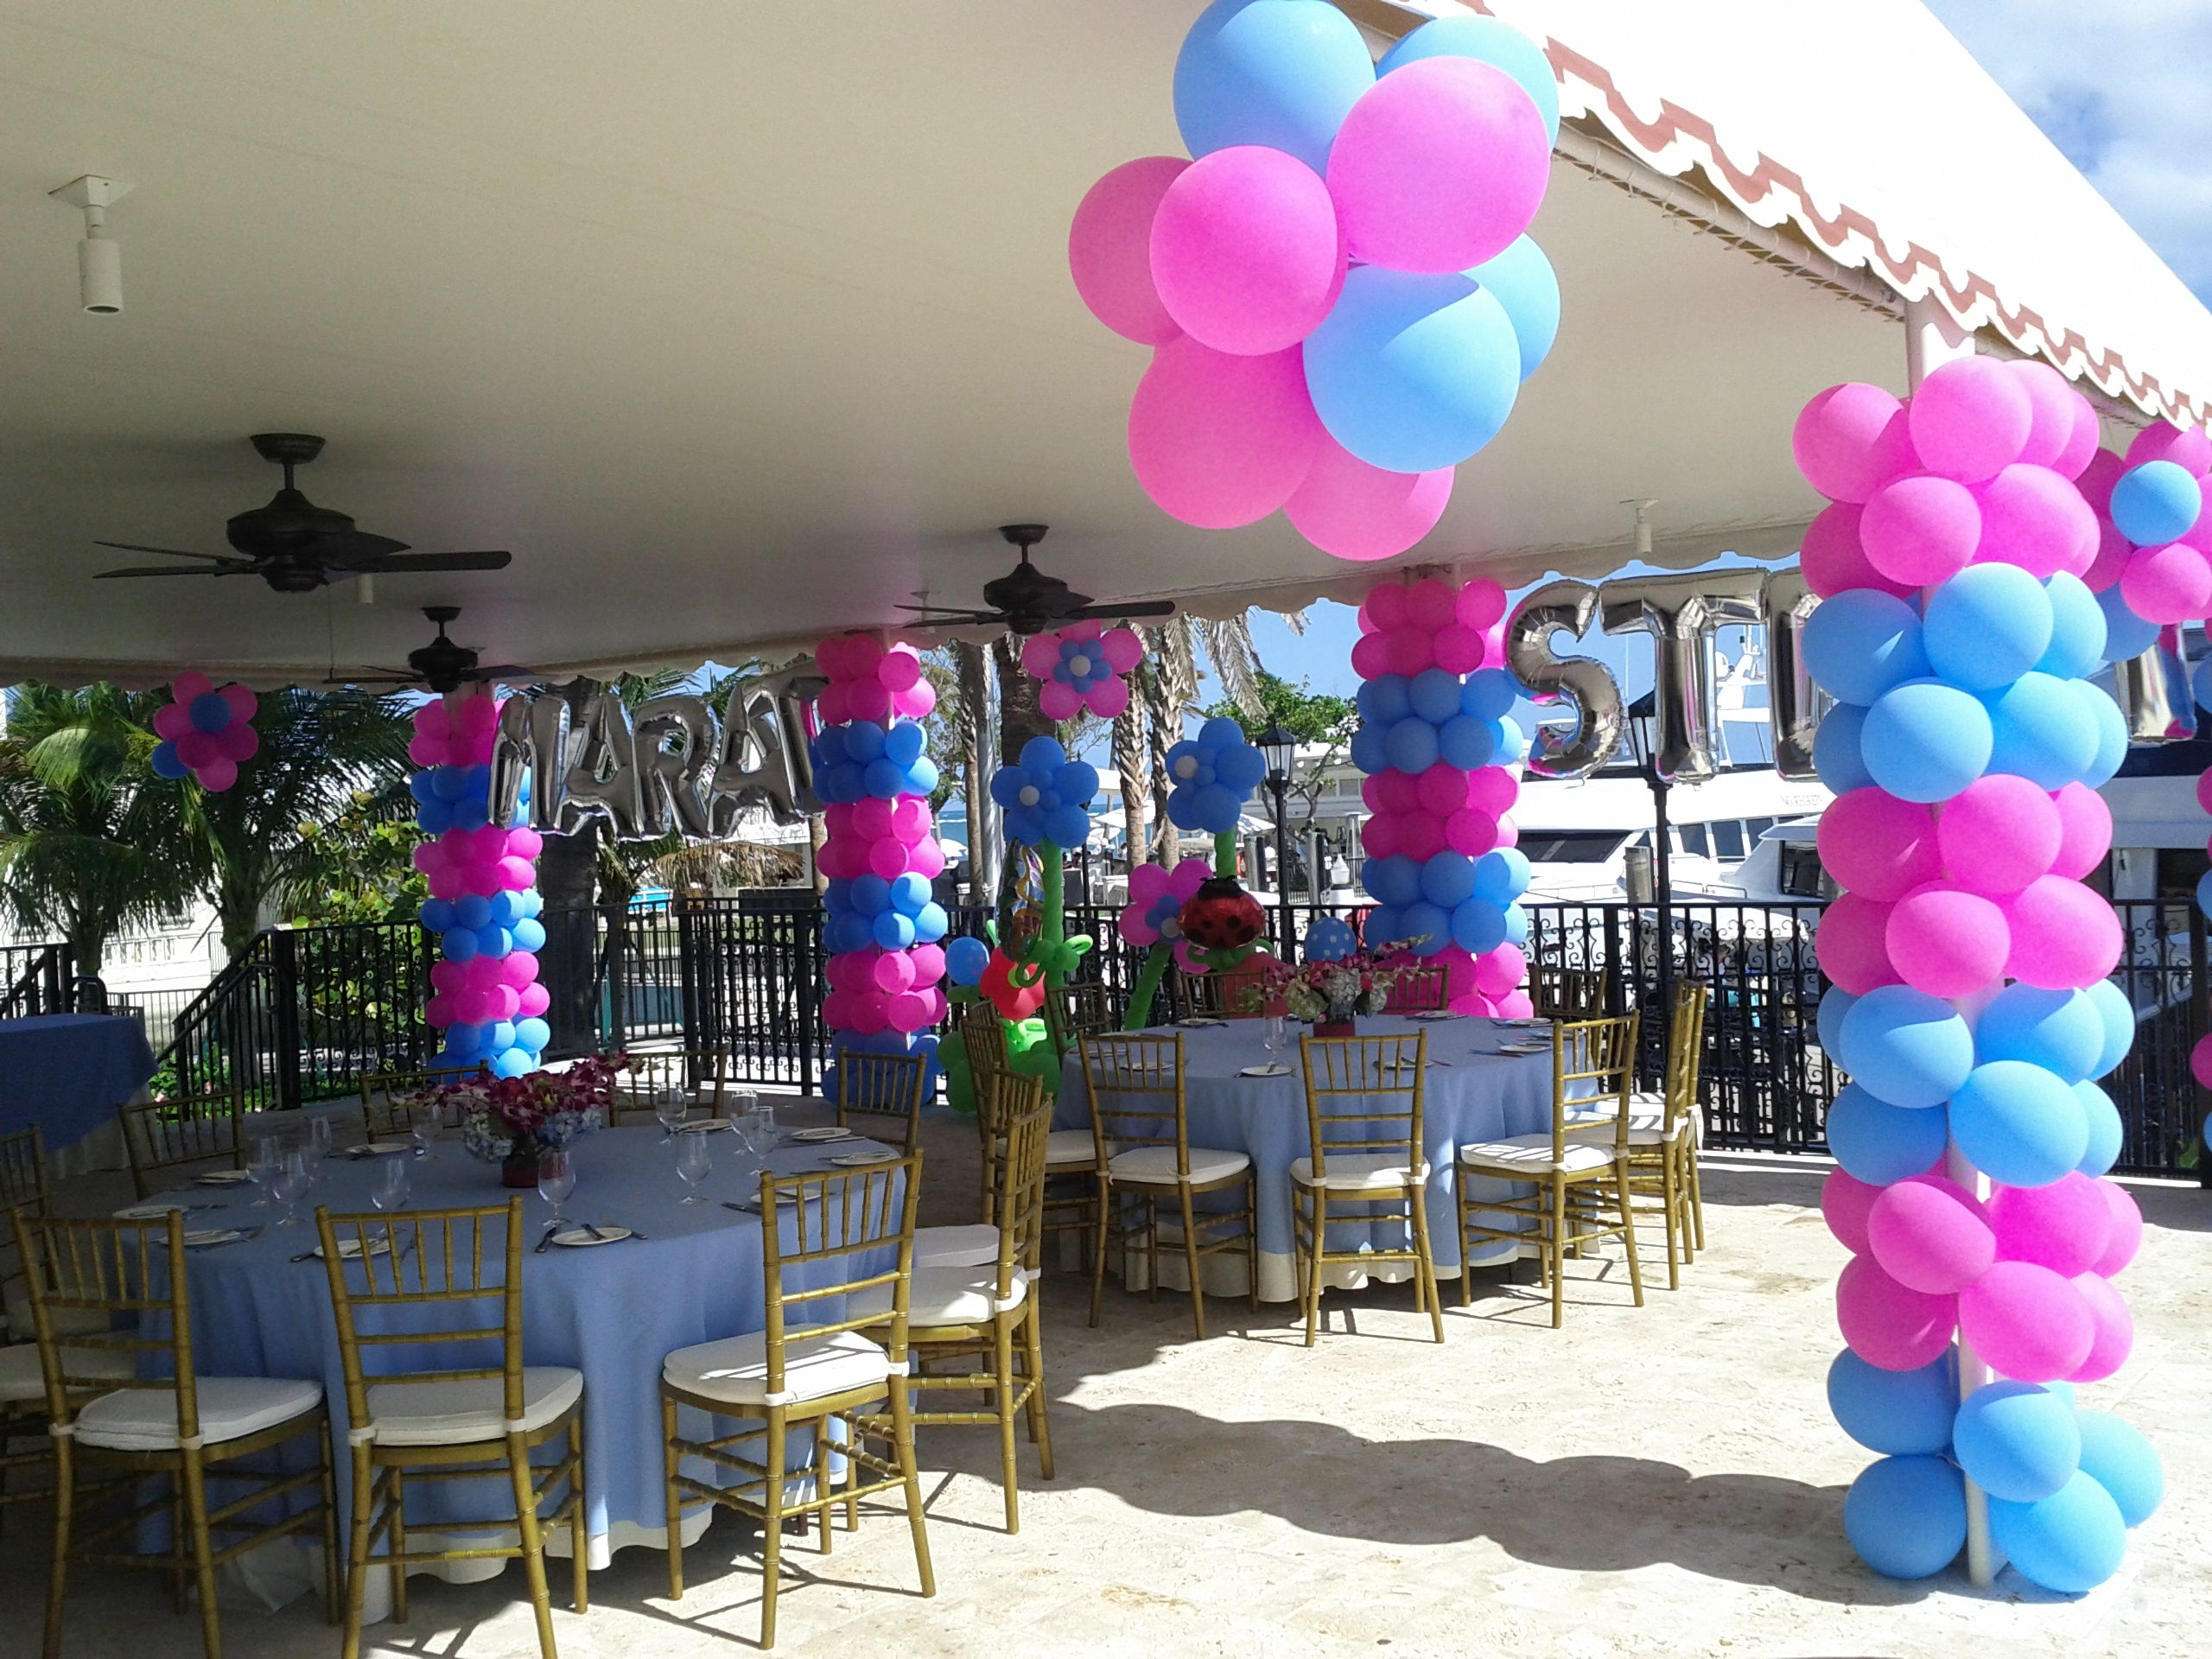 Balloon Column Balloon Flowers Balloon Ceiling Decor